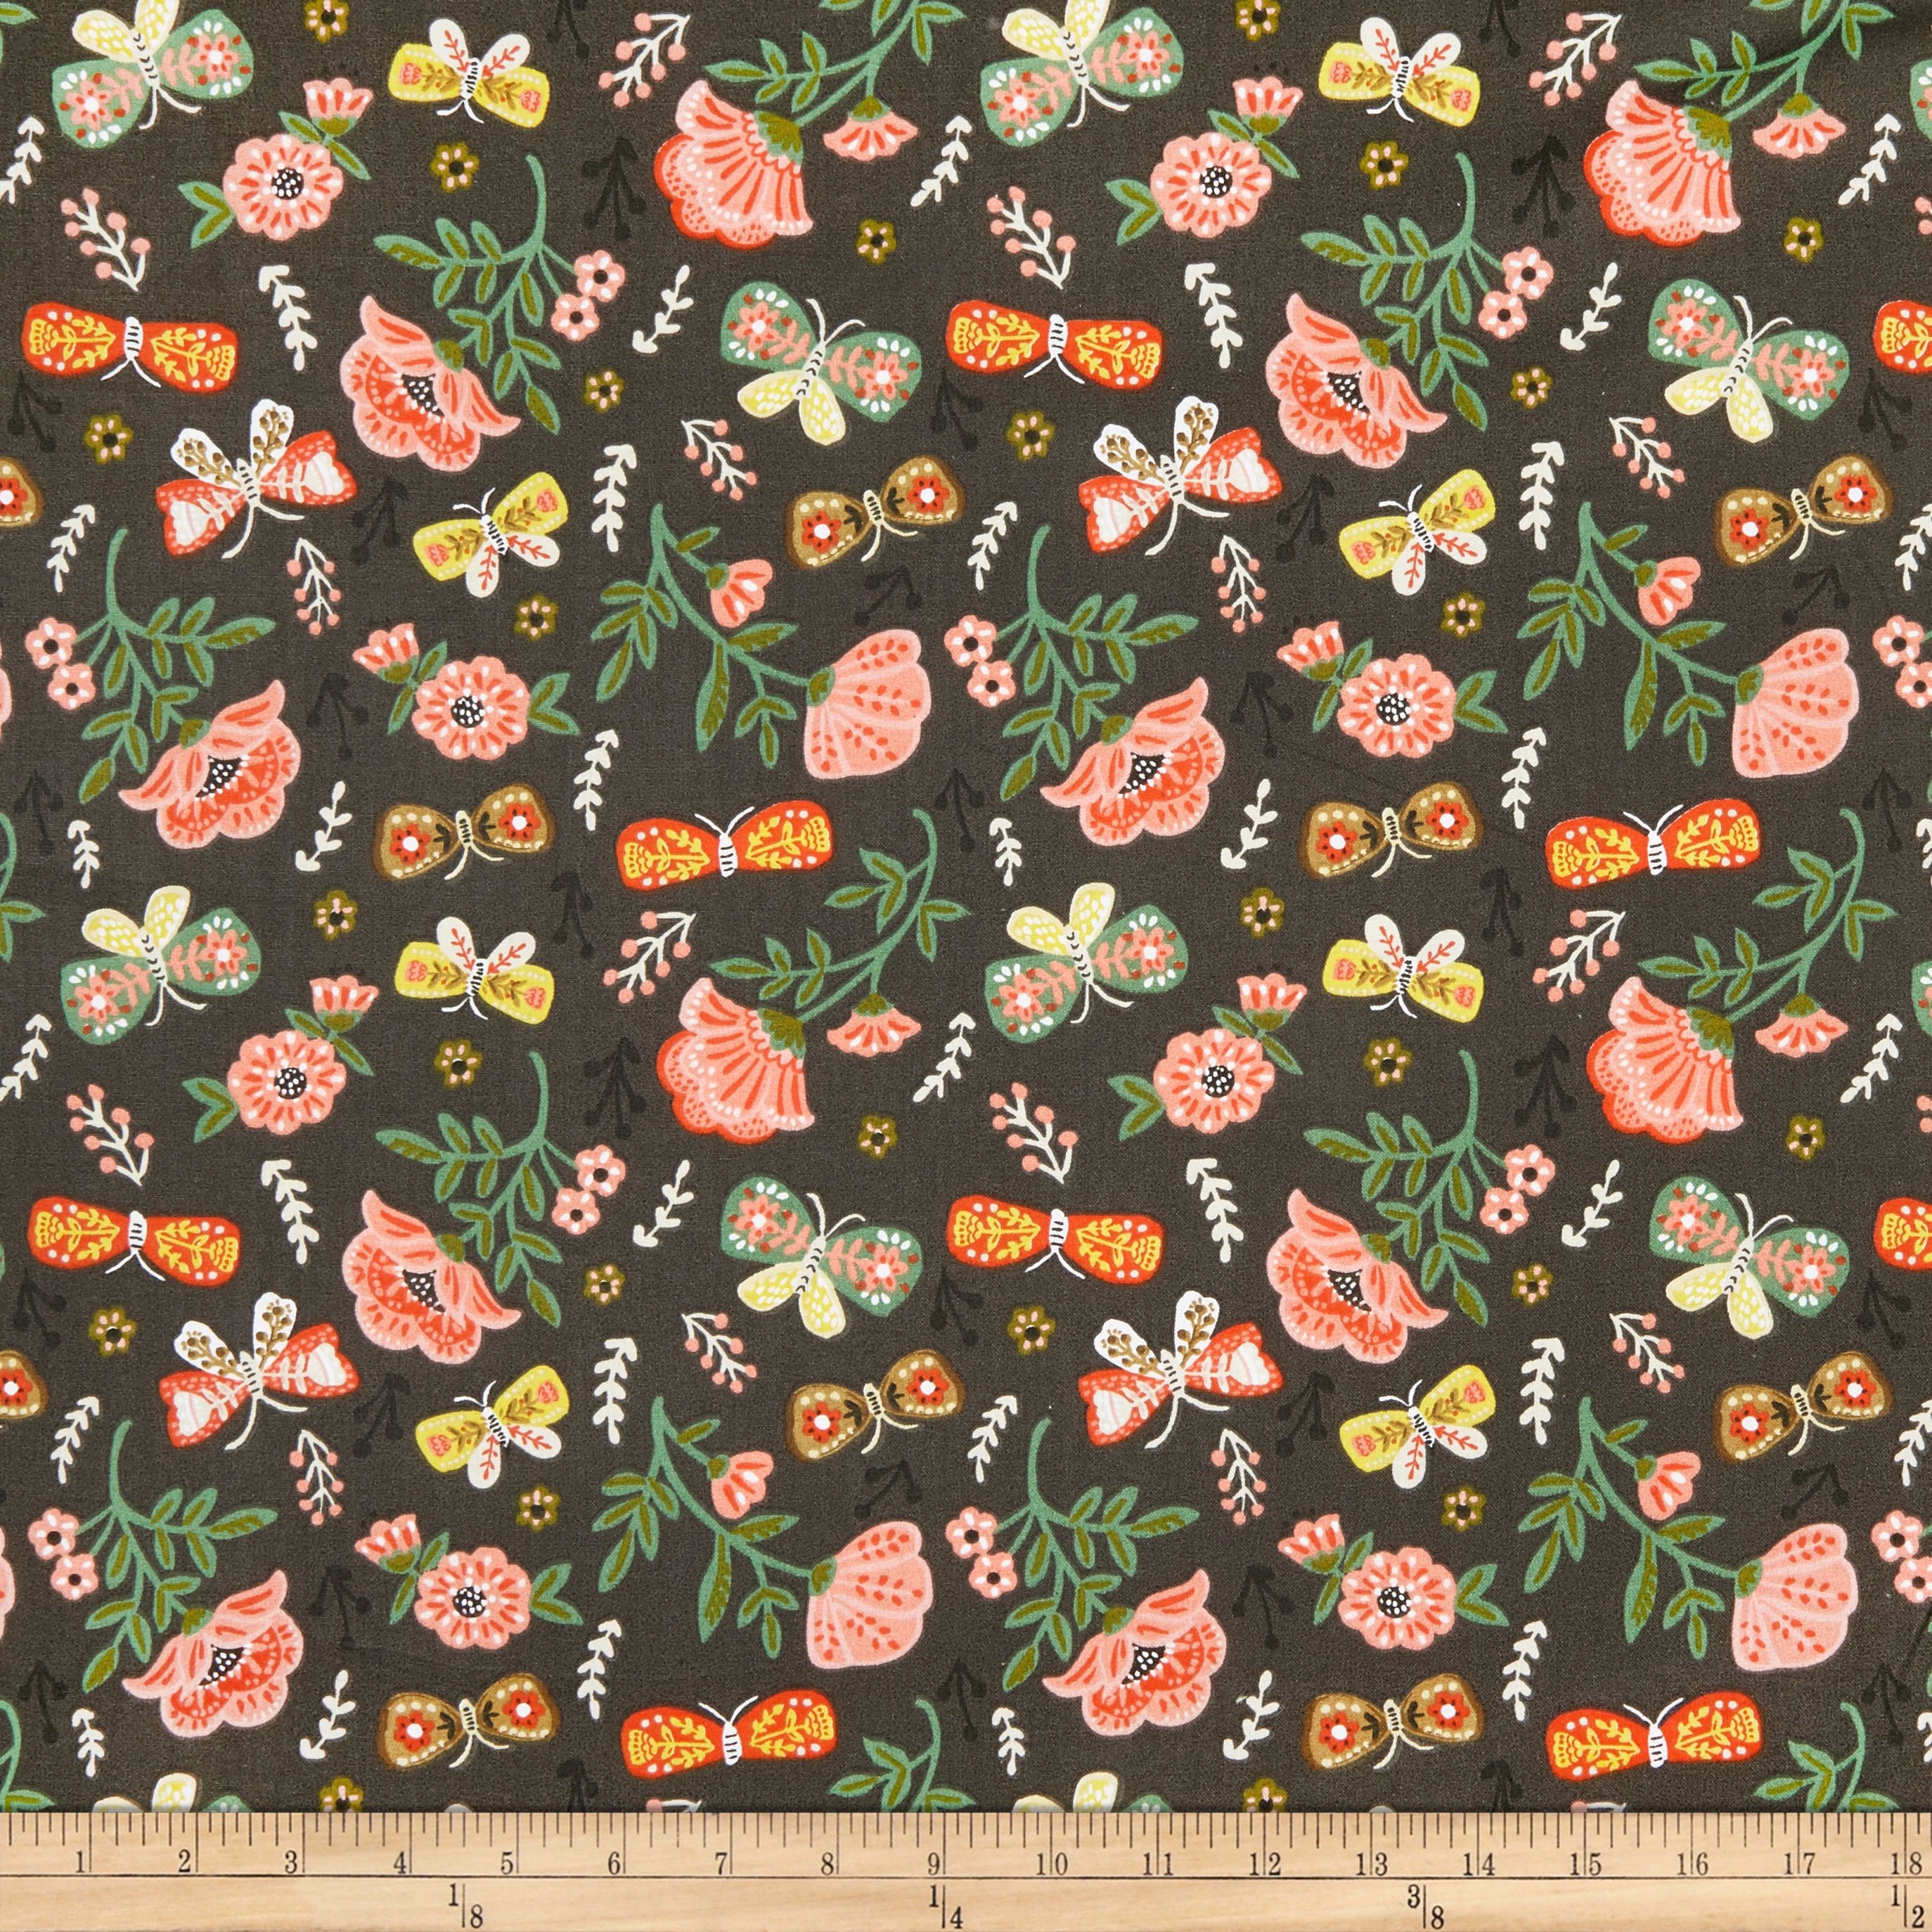 INOpets.com Anything for Pets Parents & Their Pets Fabric Editions Glorious Garden Flower And Butterflies